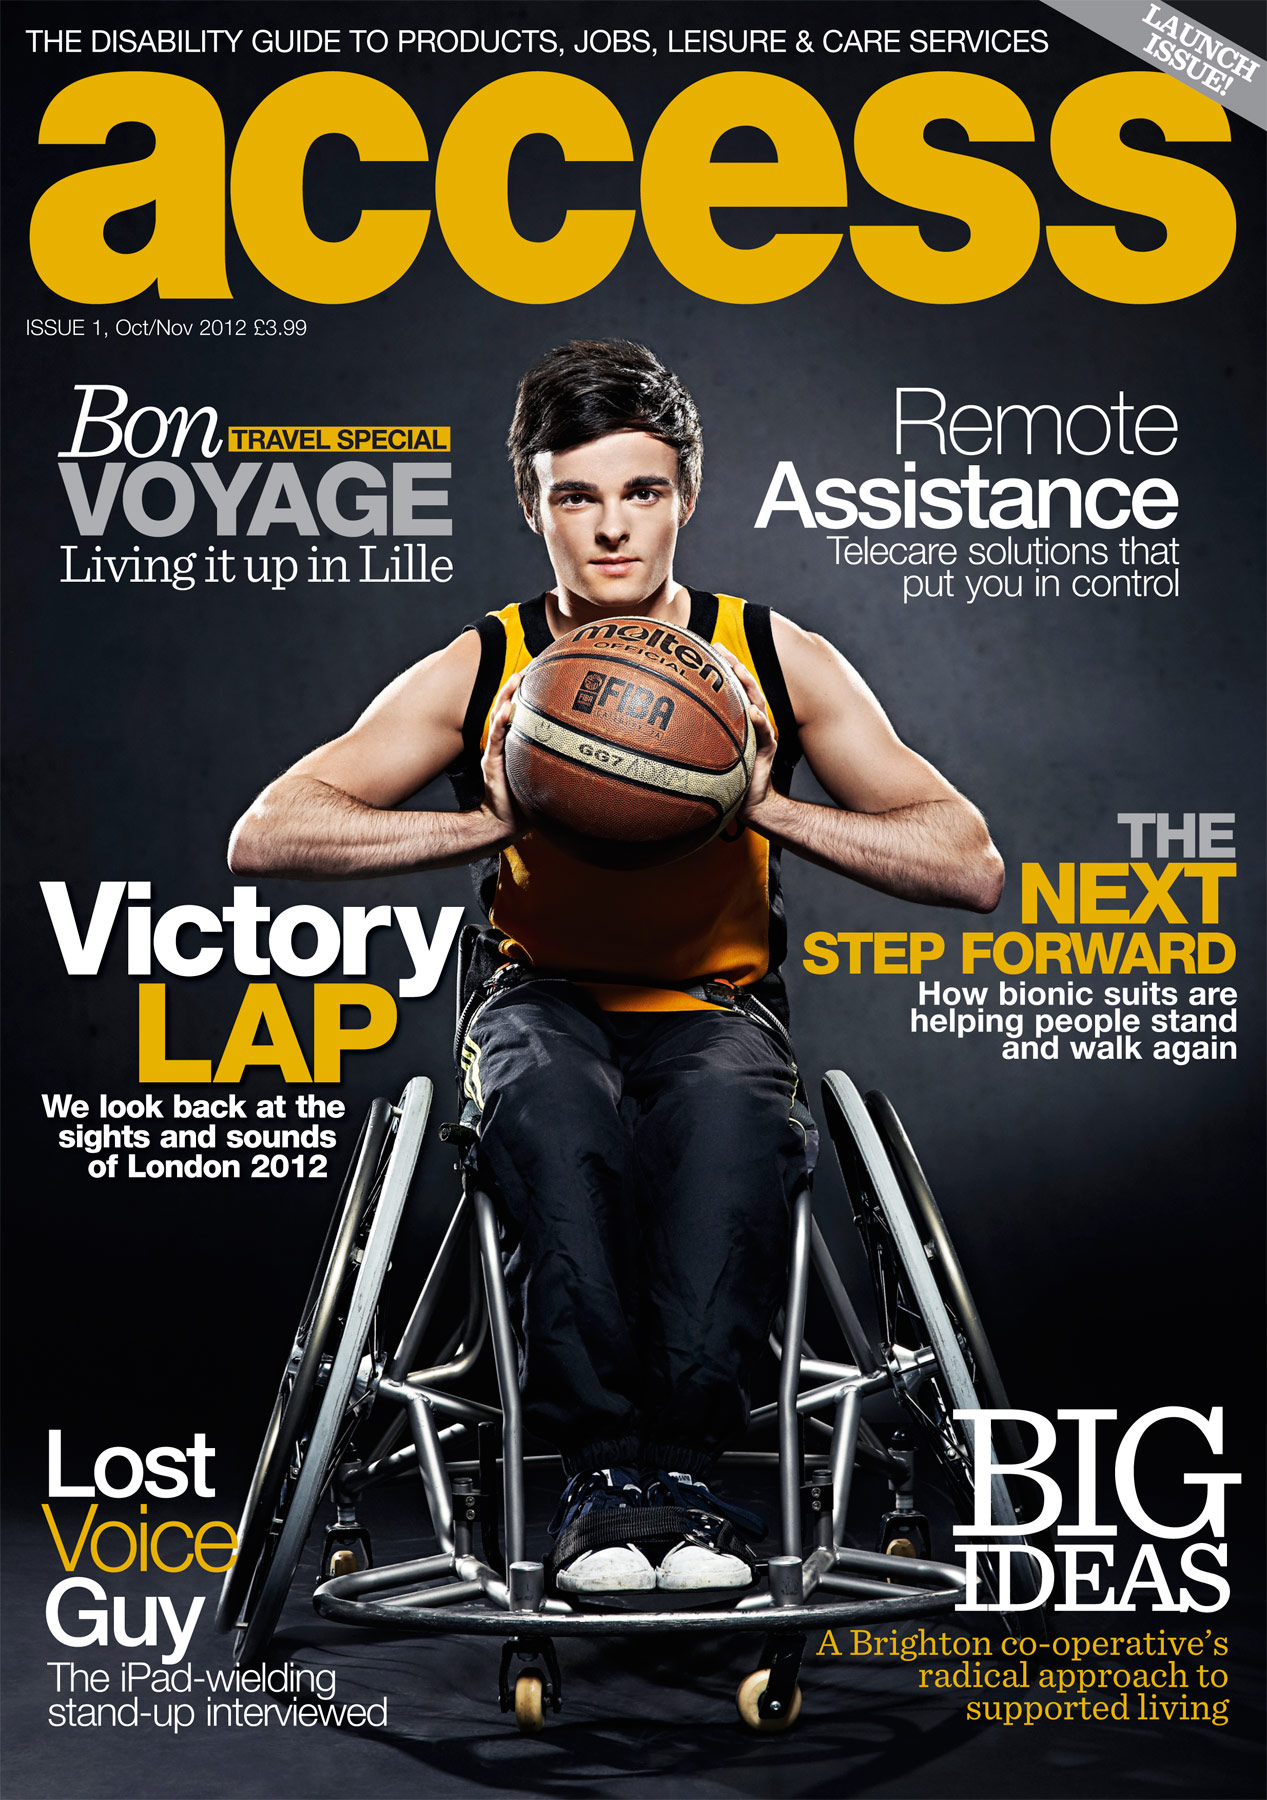 Cover of the launch issue of Access magazine featuring our image